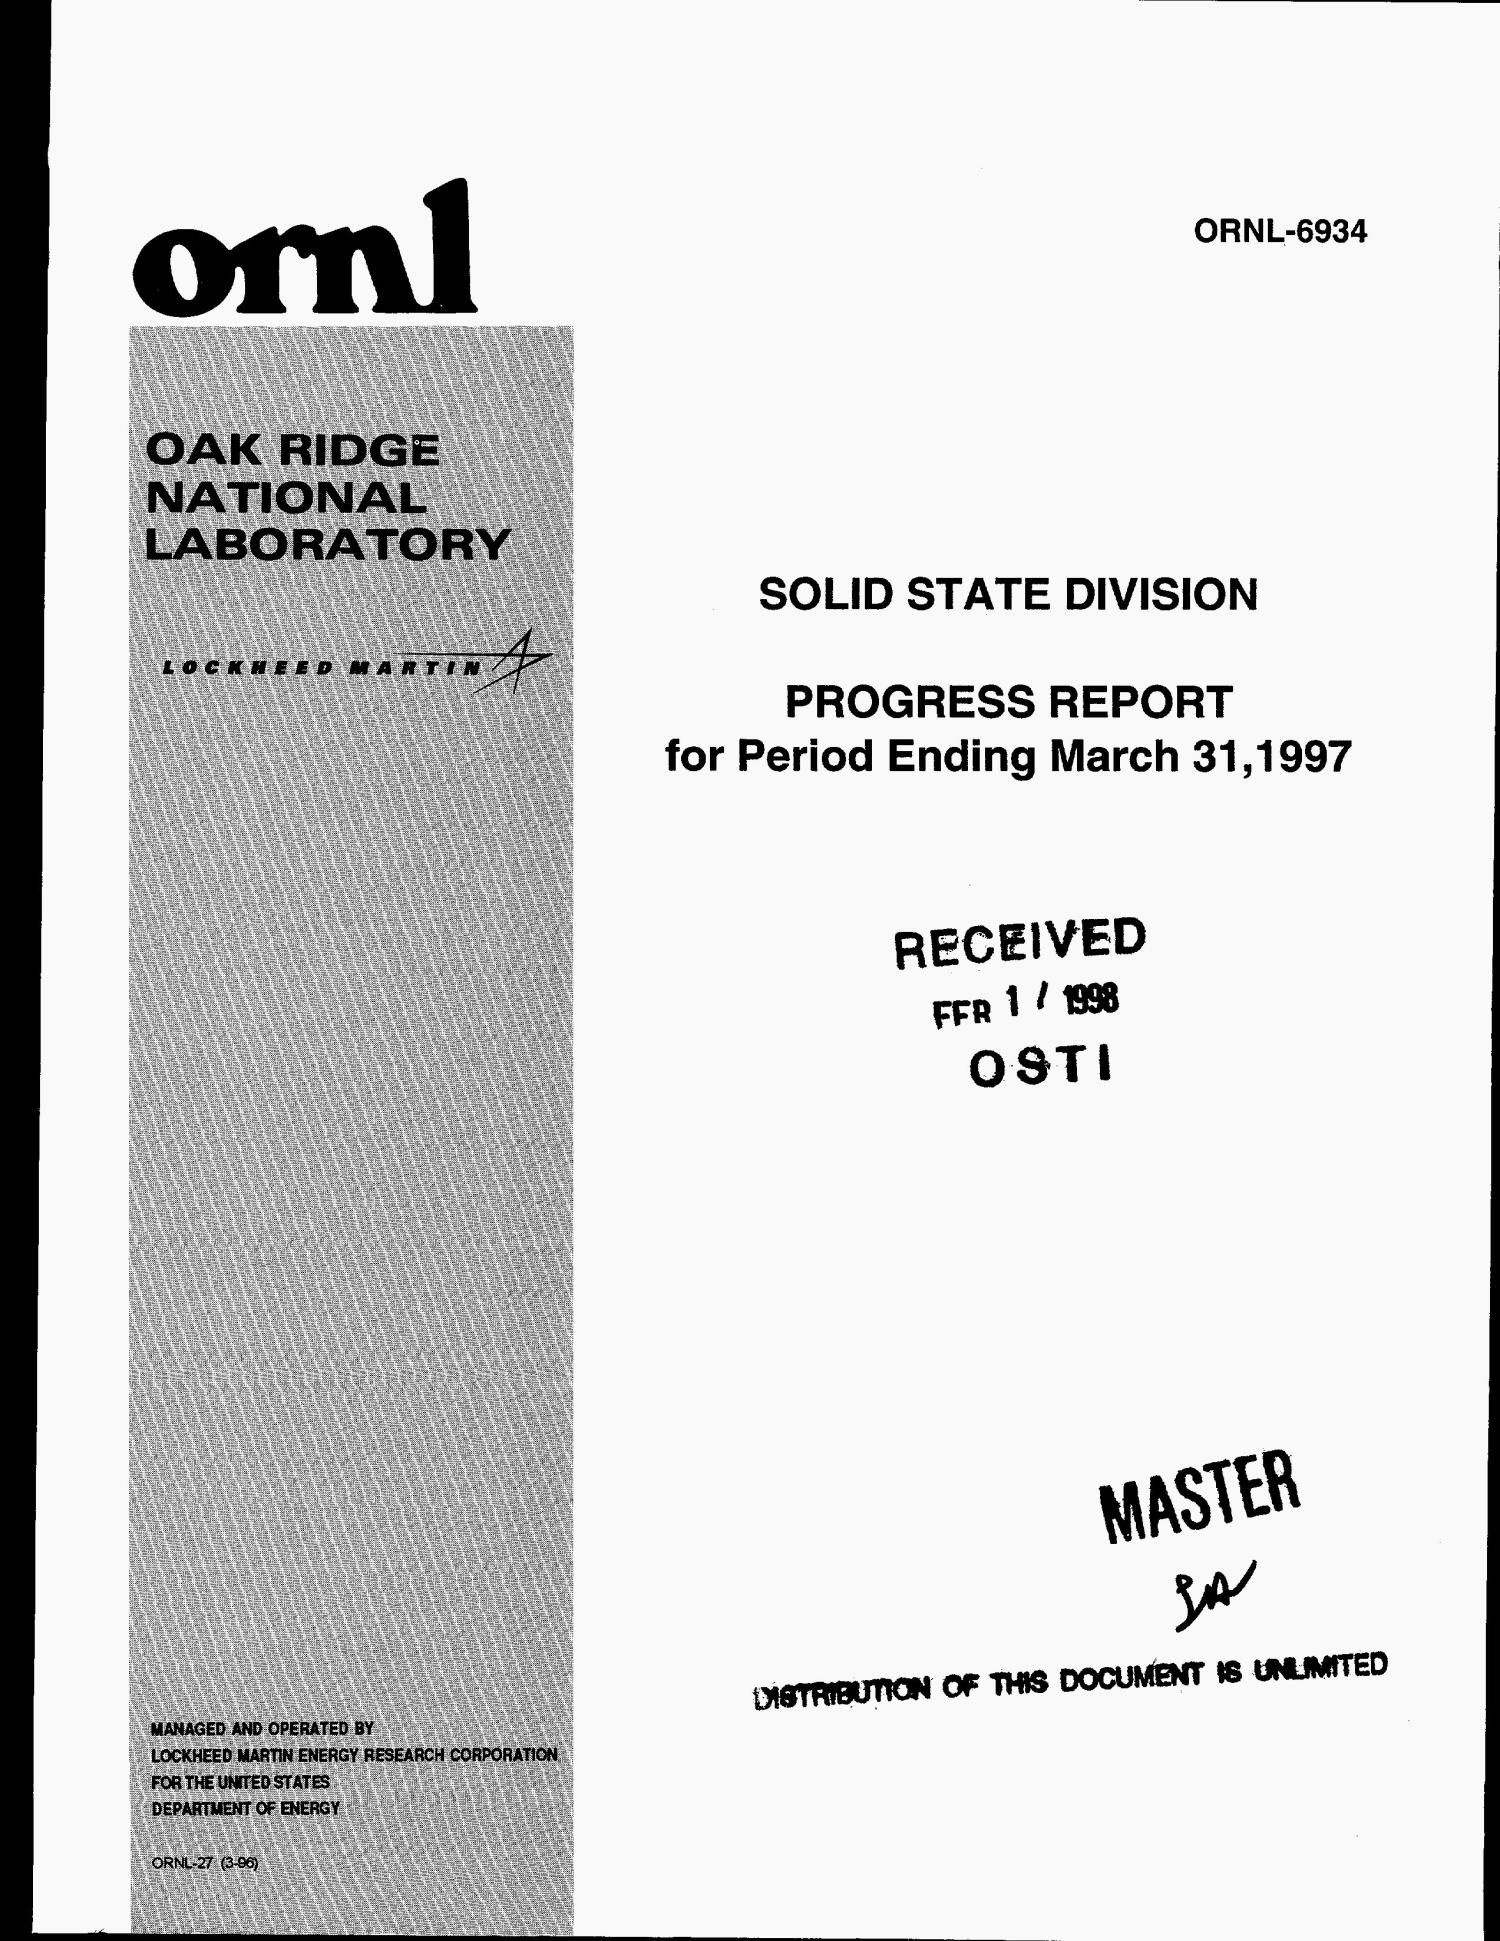 Solid State Division progress report for period ending March 31, 1997                                                                                                      [Sequence #]: 1 of 338